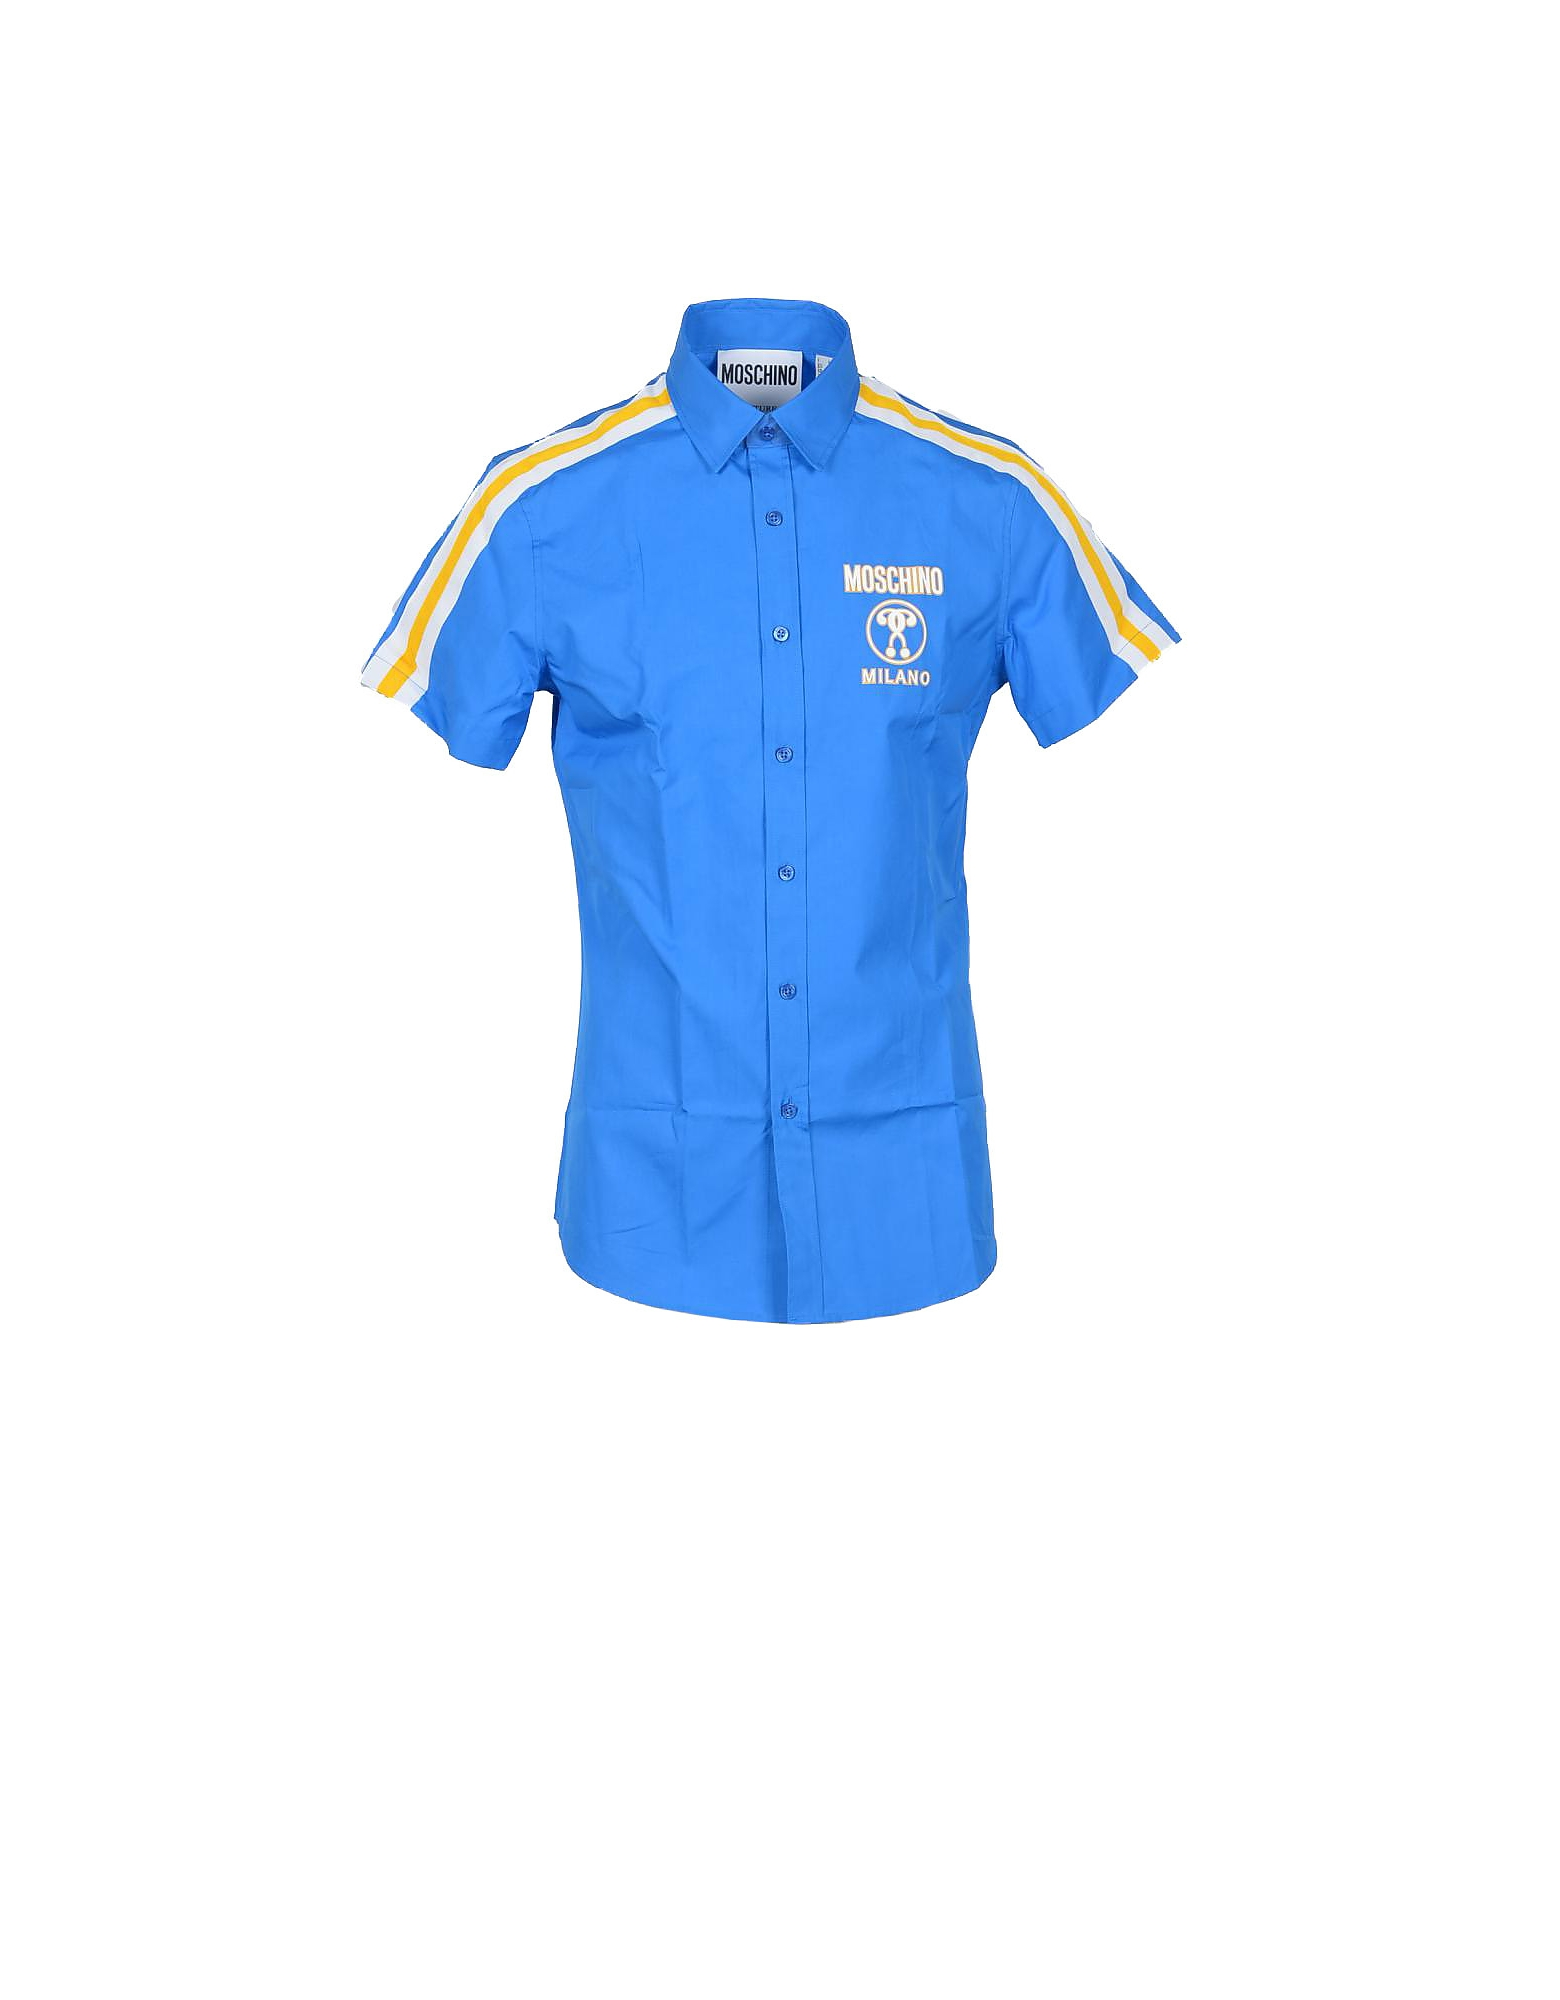 Moschino Designer Shirts, Stripe and Signature Bright Blue Cotton Short Sleeve Men's Shirt